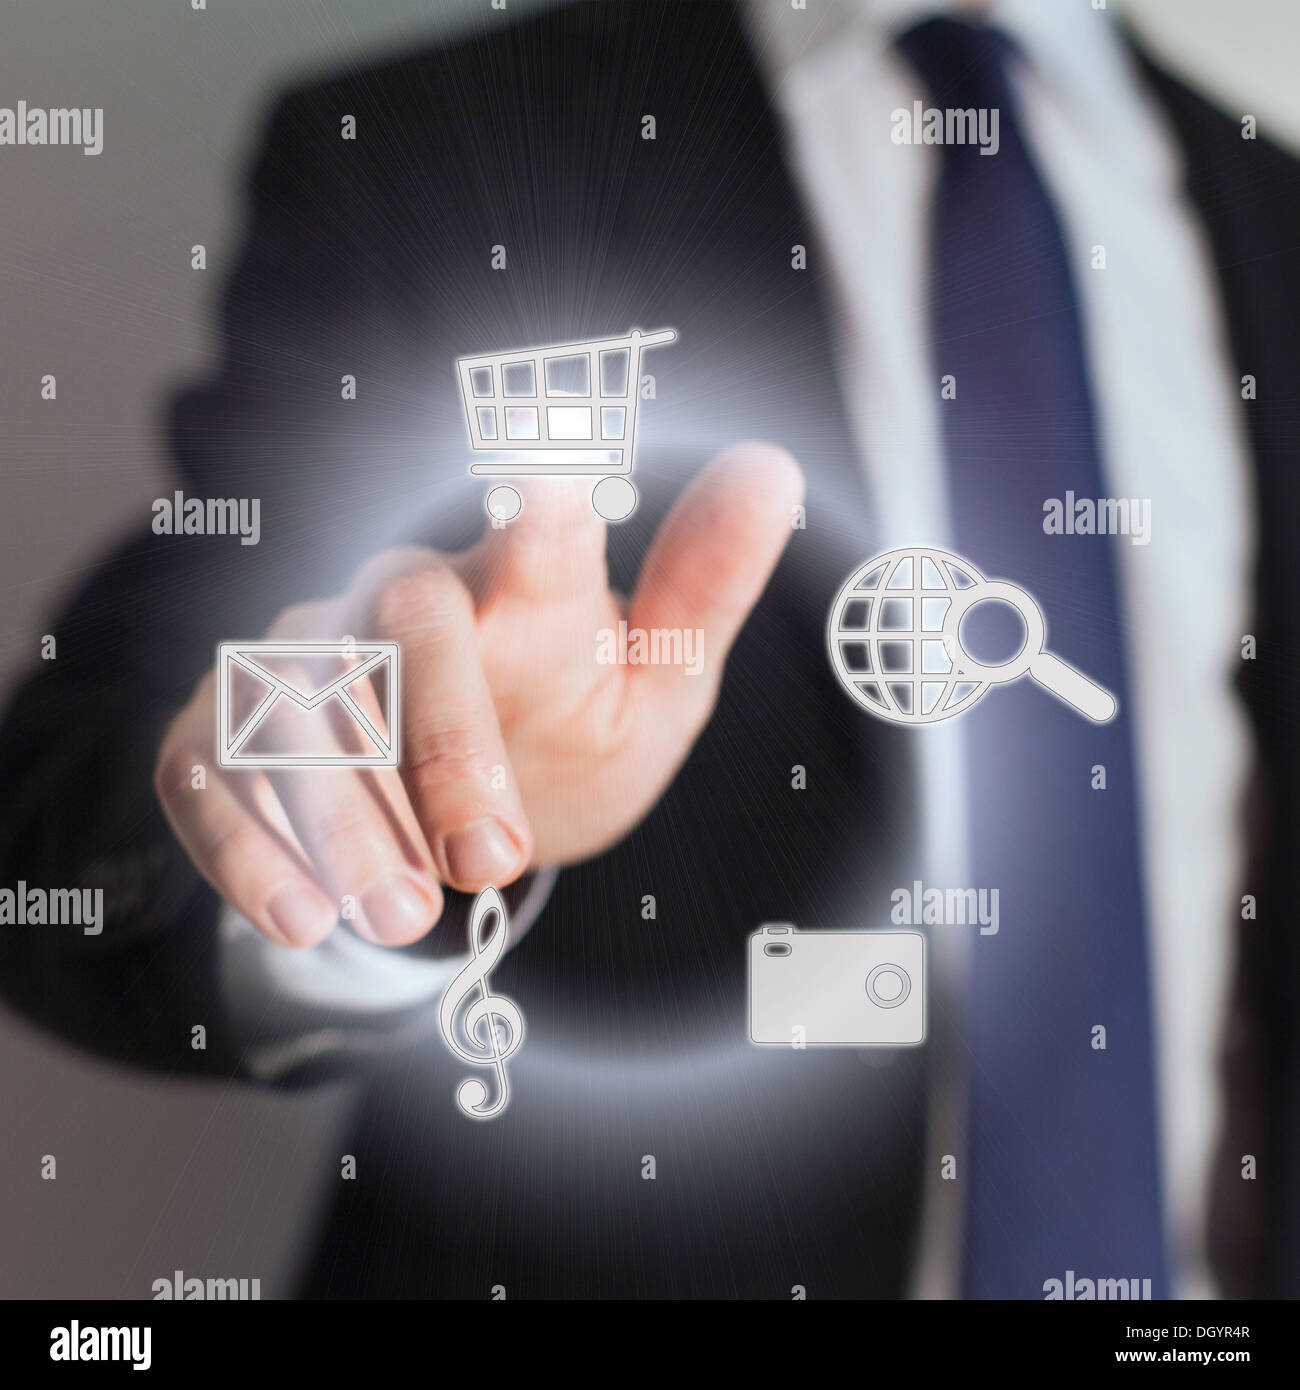 touch screen - Stock Image